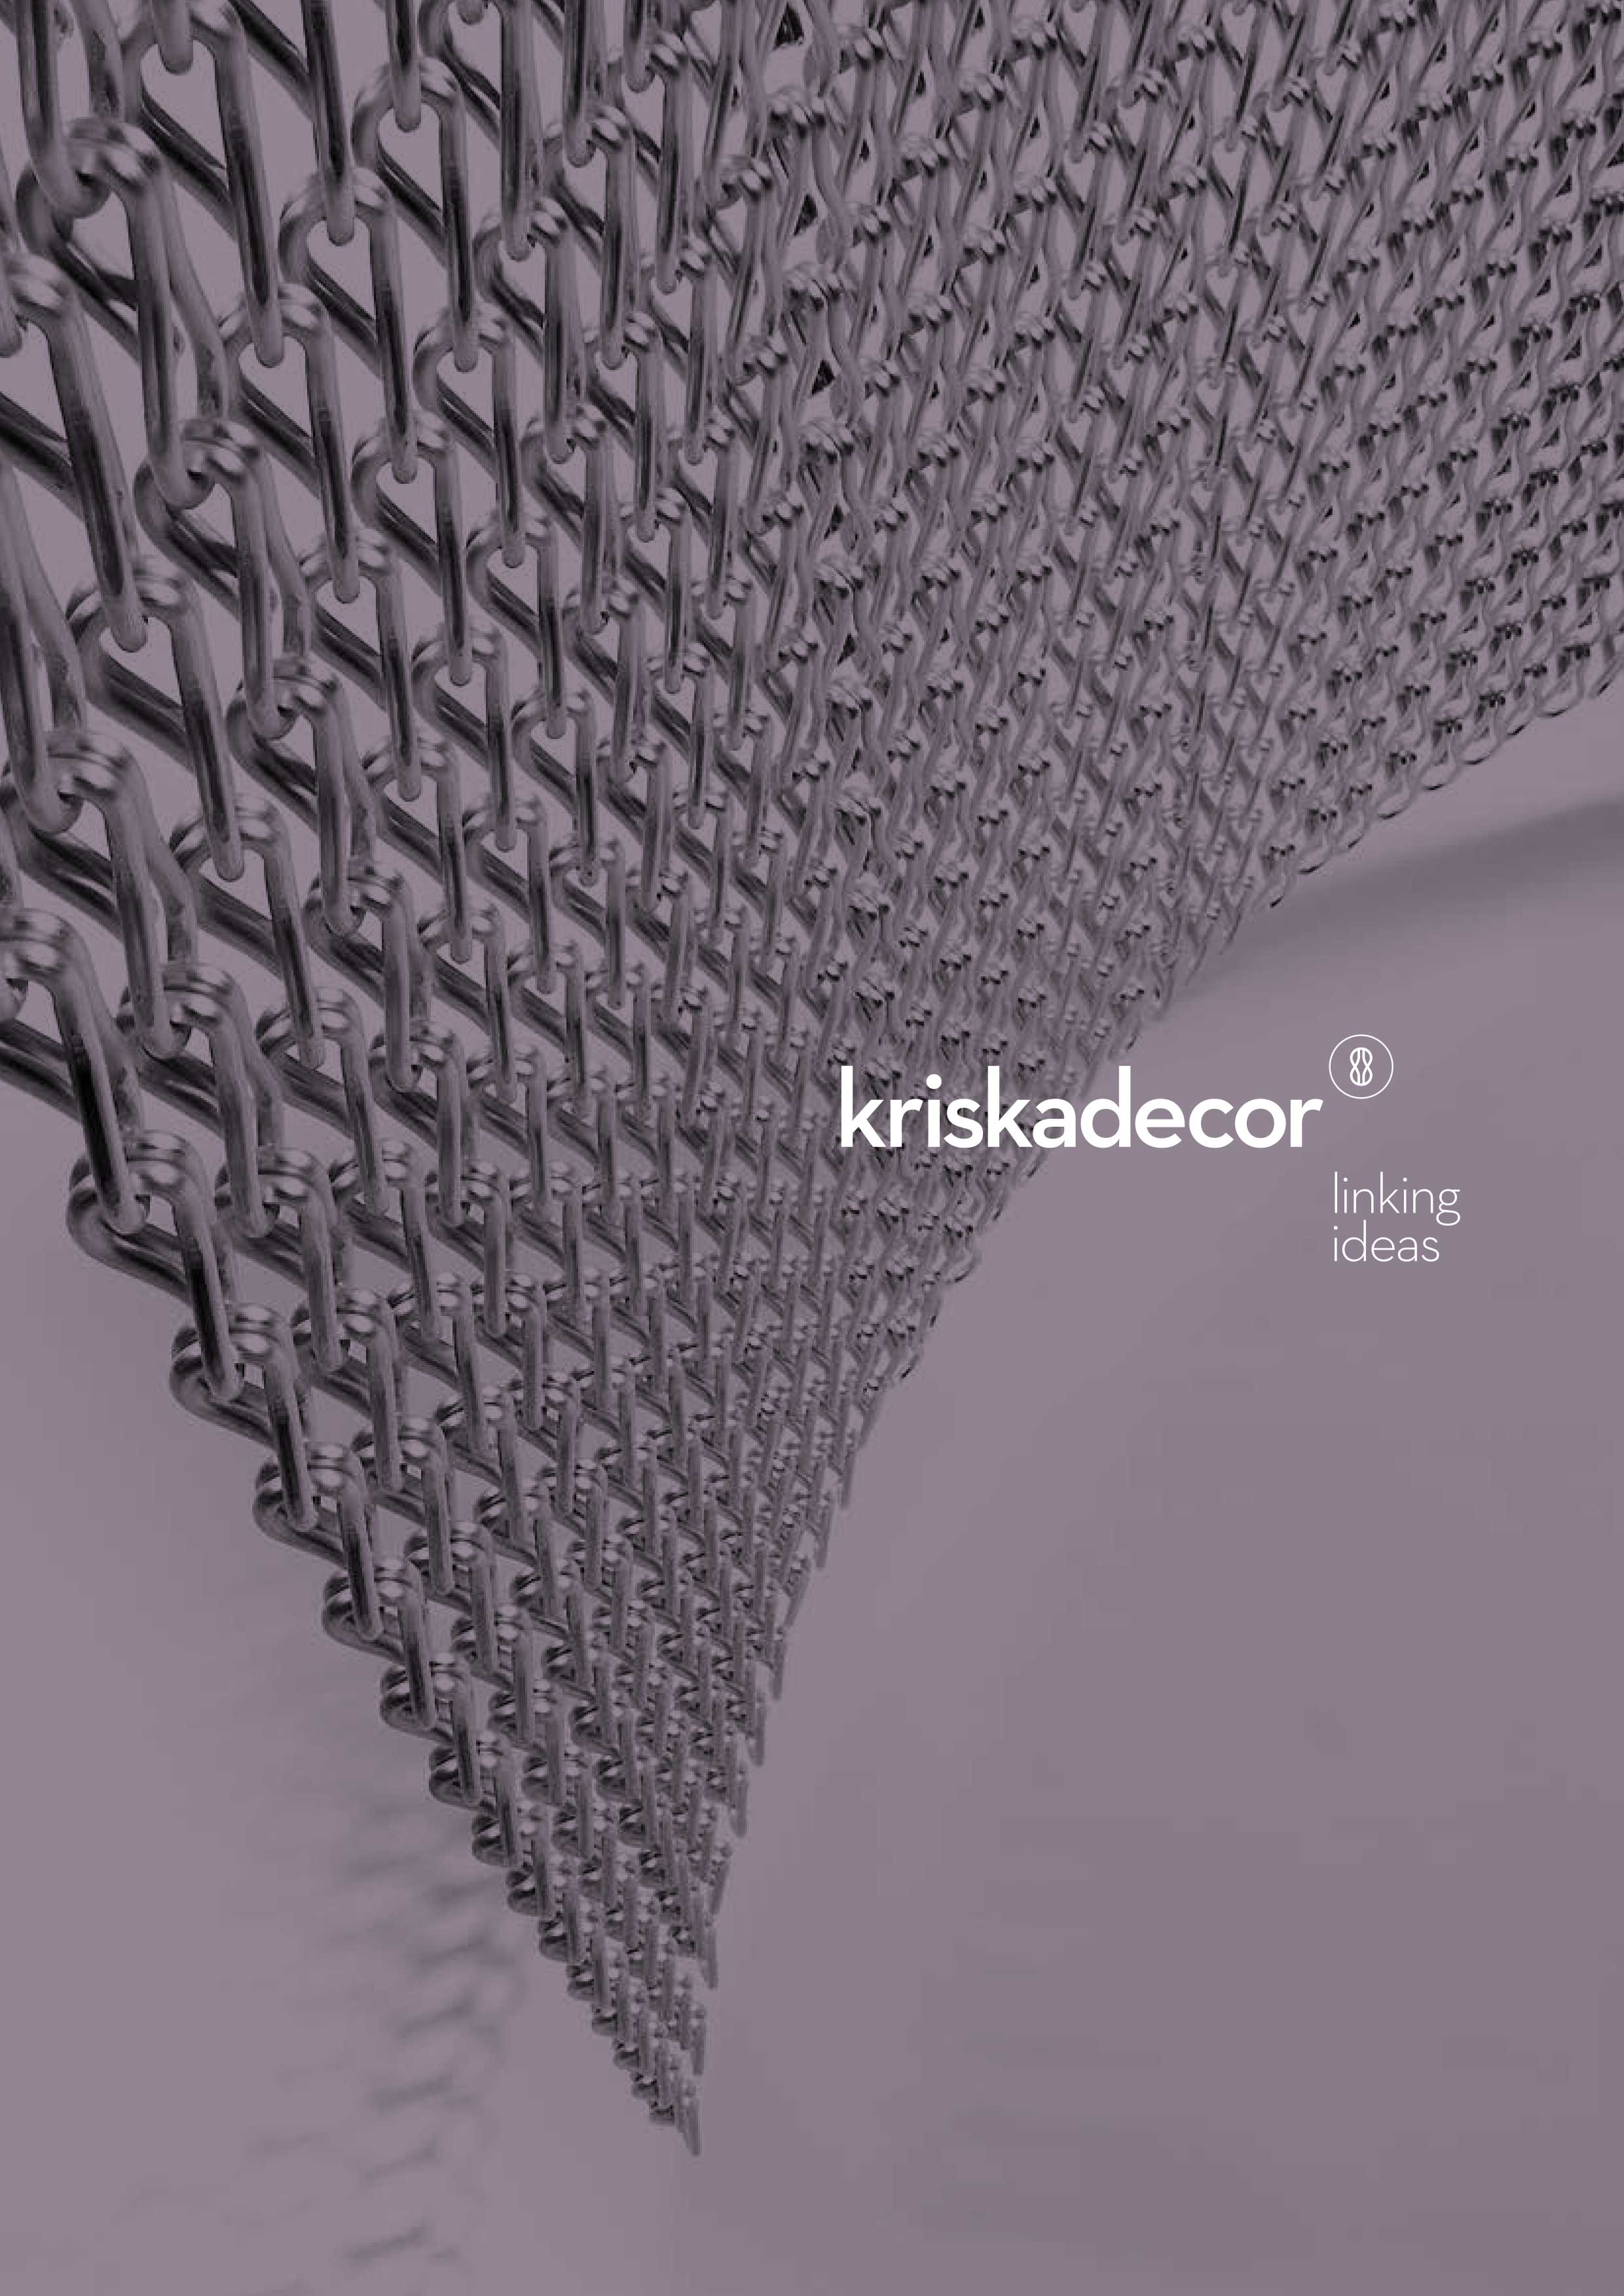 Kriskadecor-General-Catalogue.pdf